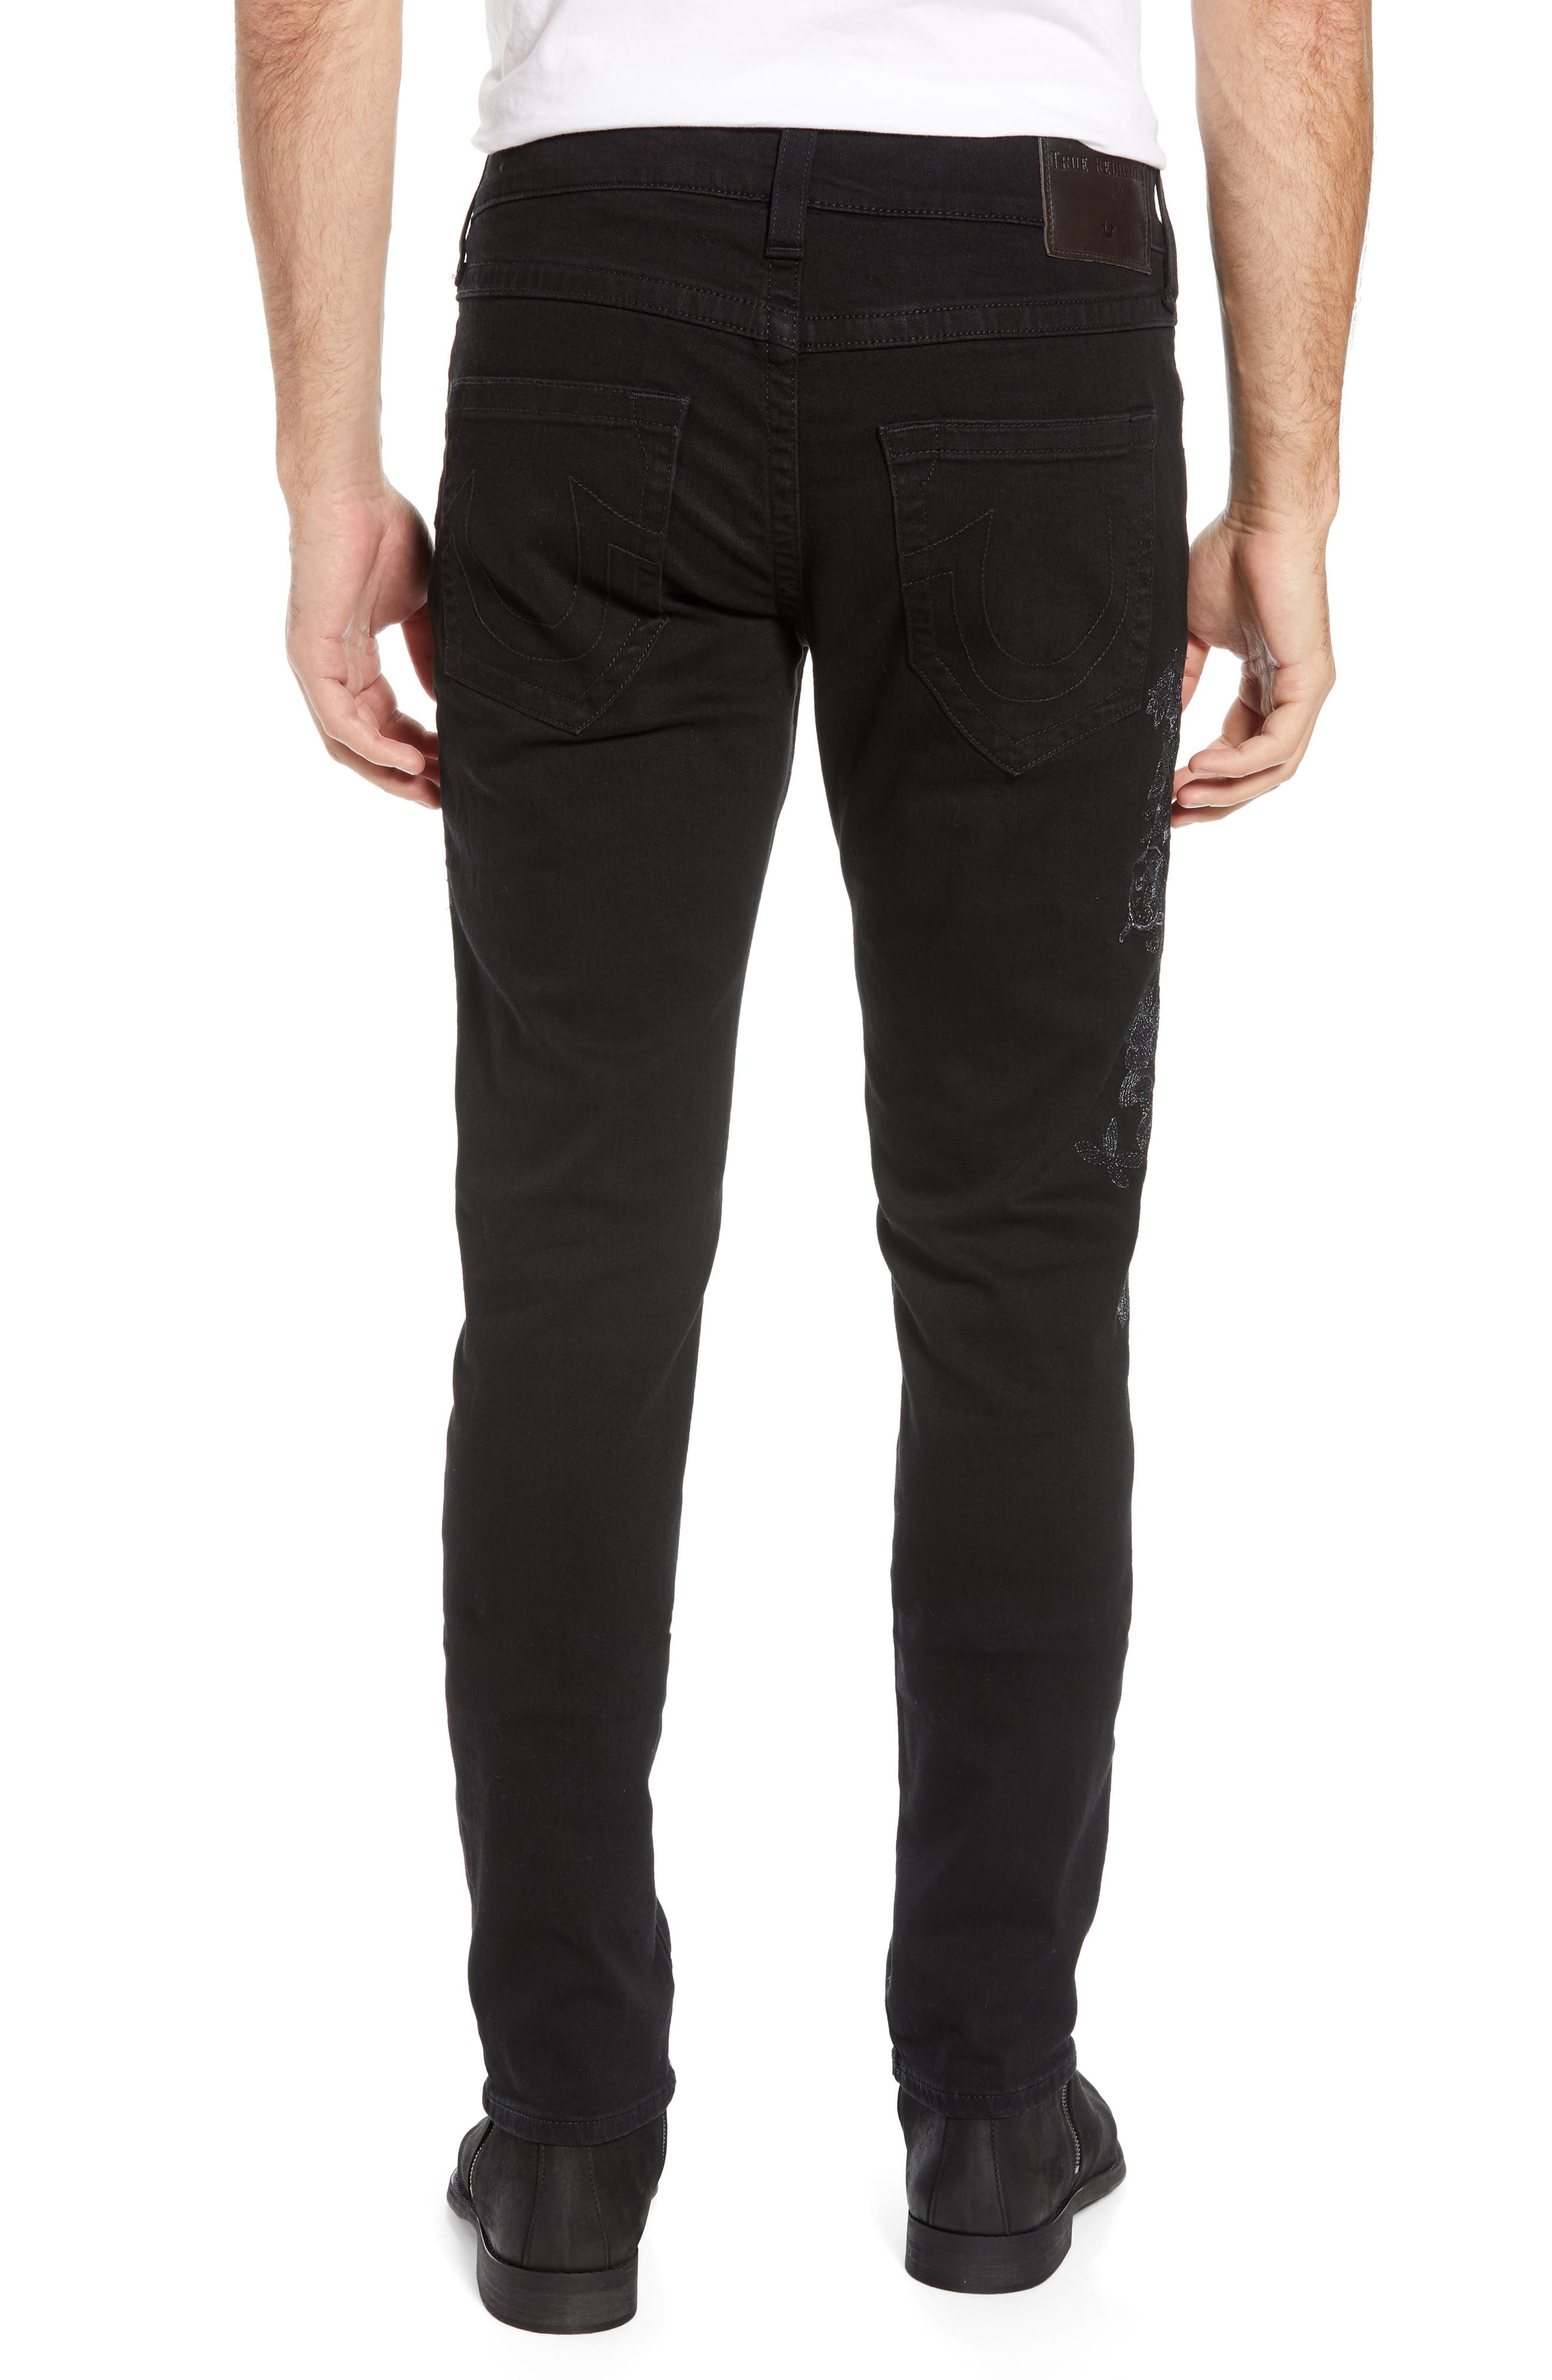 TRUE RELIGION BRAND JEANS,                             Rocco Skinny Fit Jeans,                             Alternate thumbnail 2, color,                             FPCB MAGNETIC FIELD